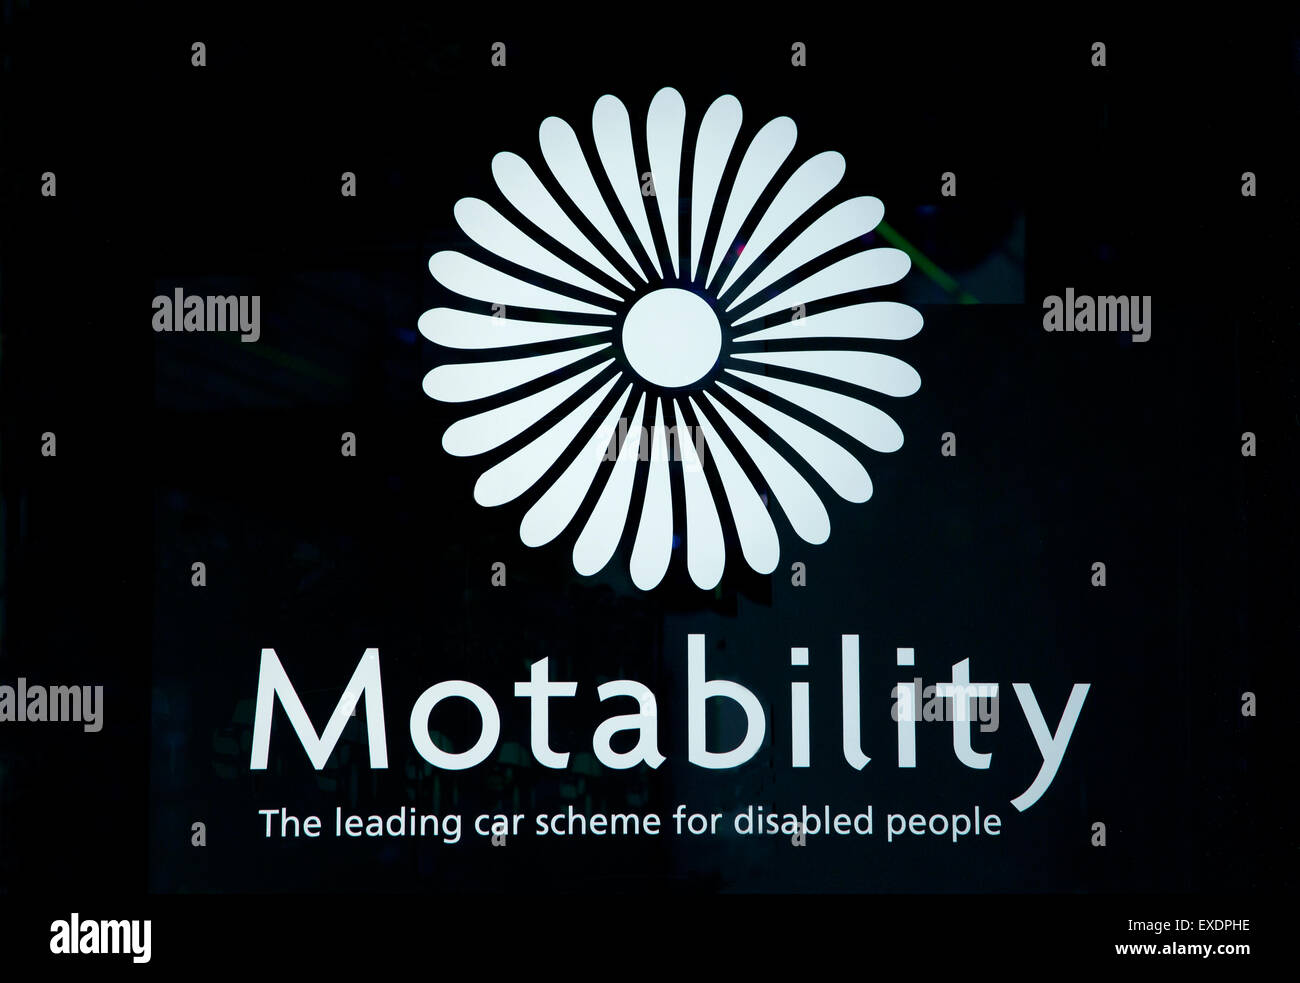 Motability car scheme for disabled people logo in car showroom window, London - Stock Image